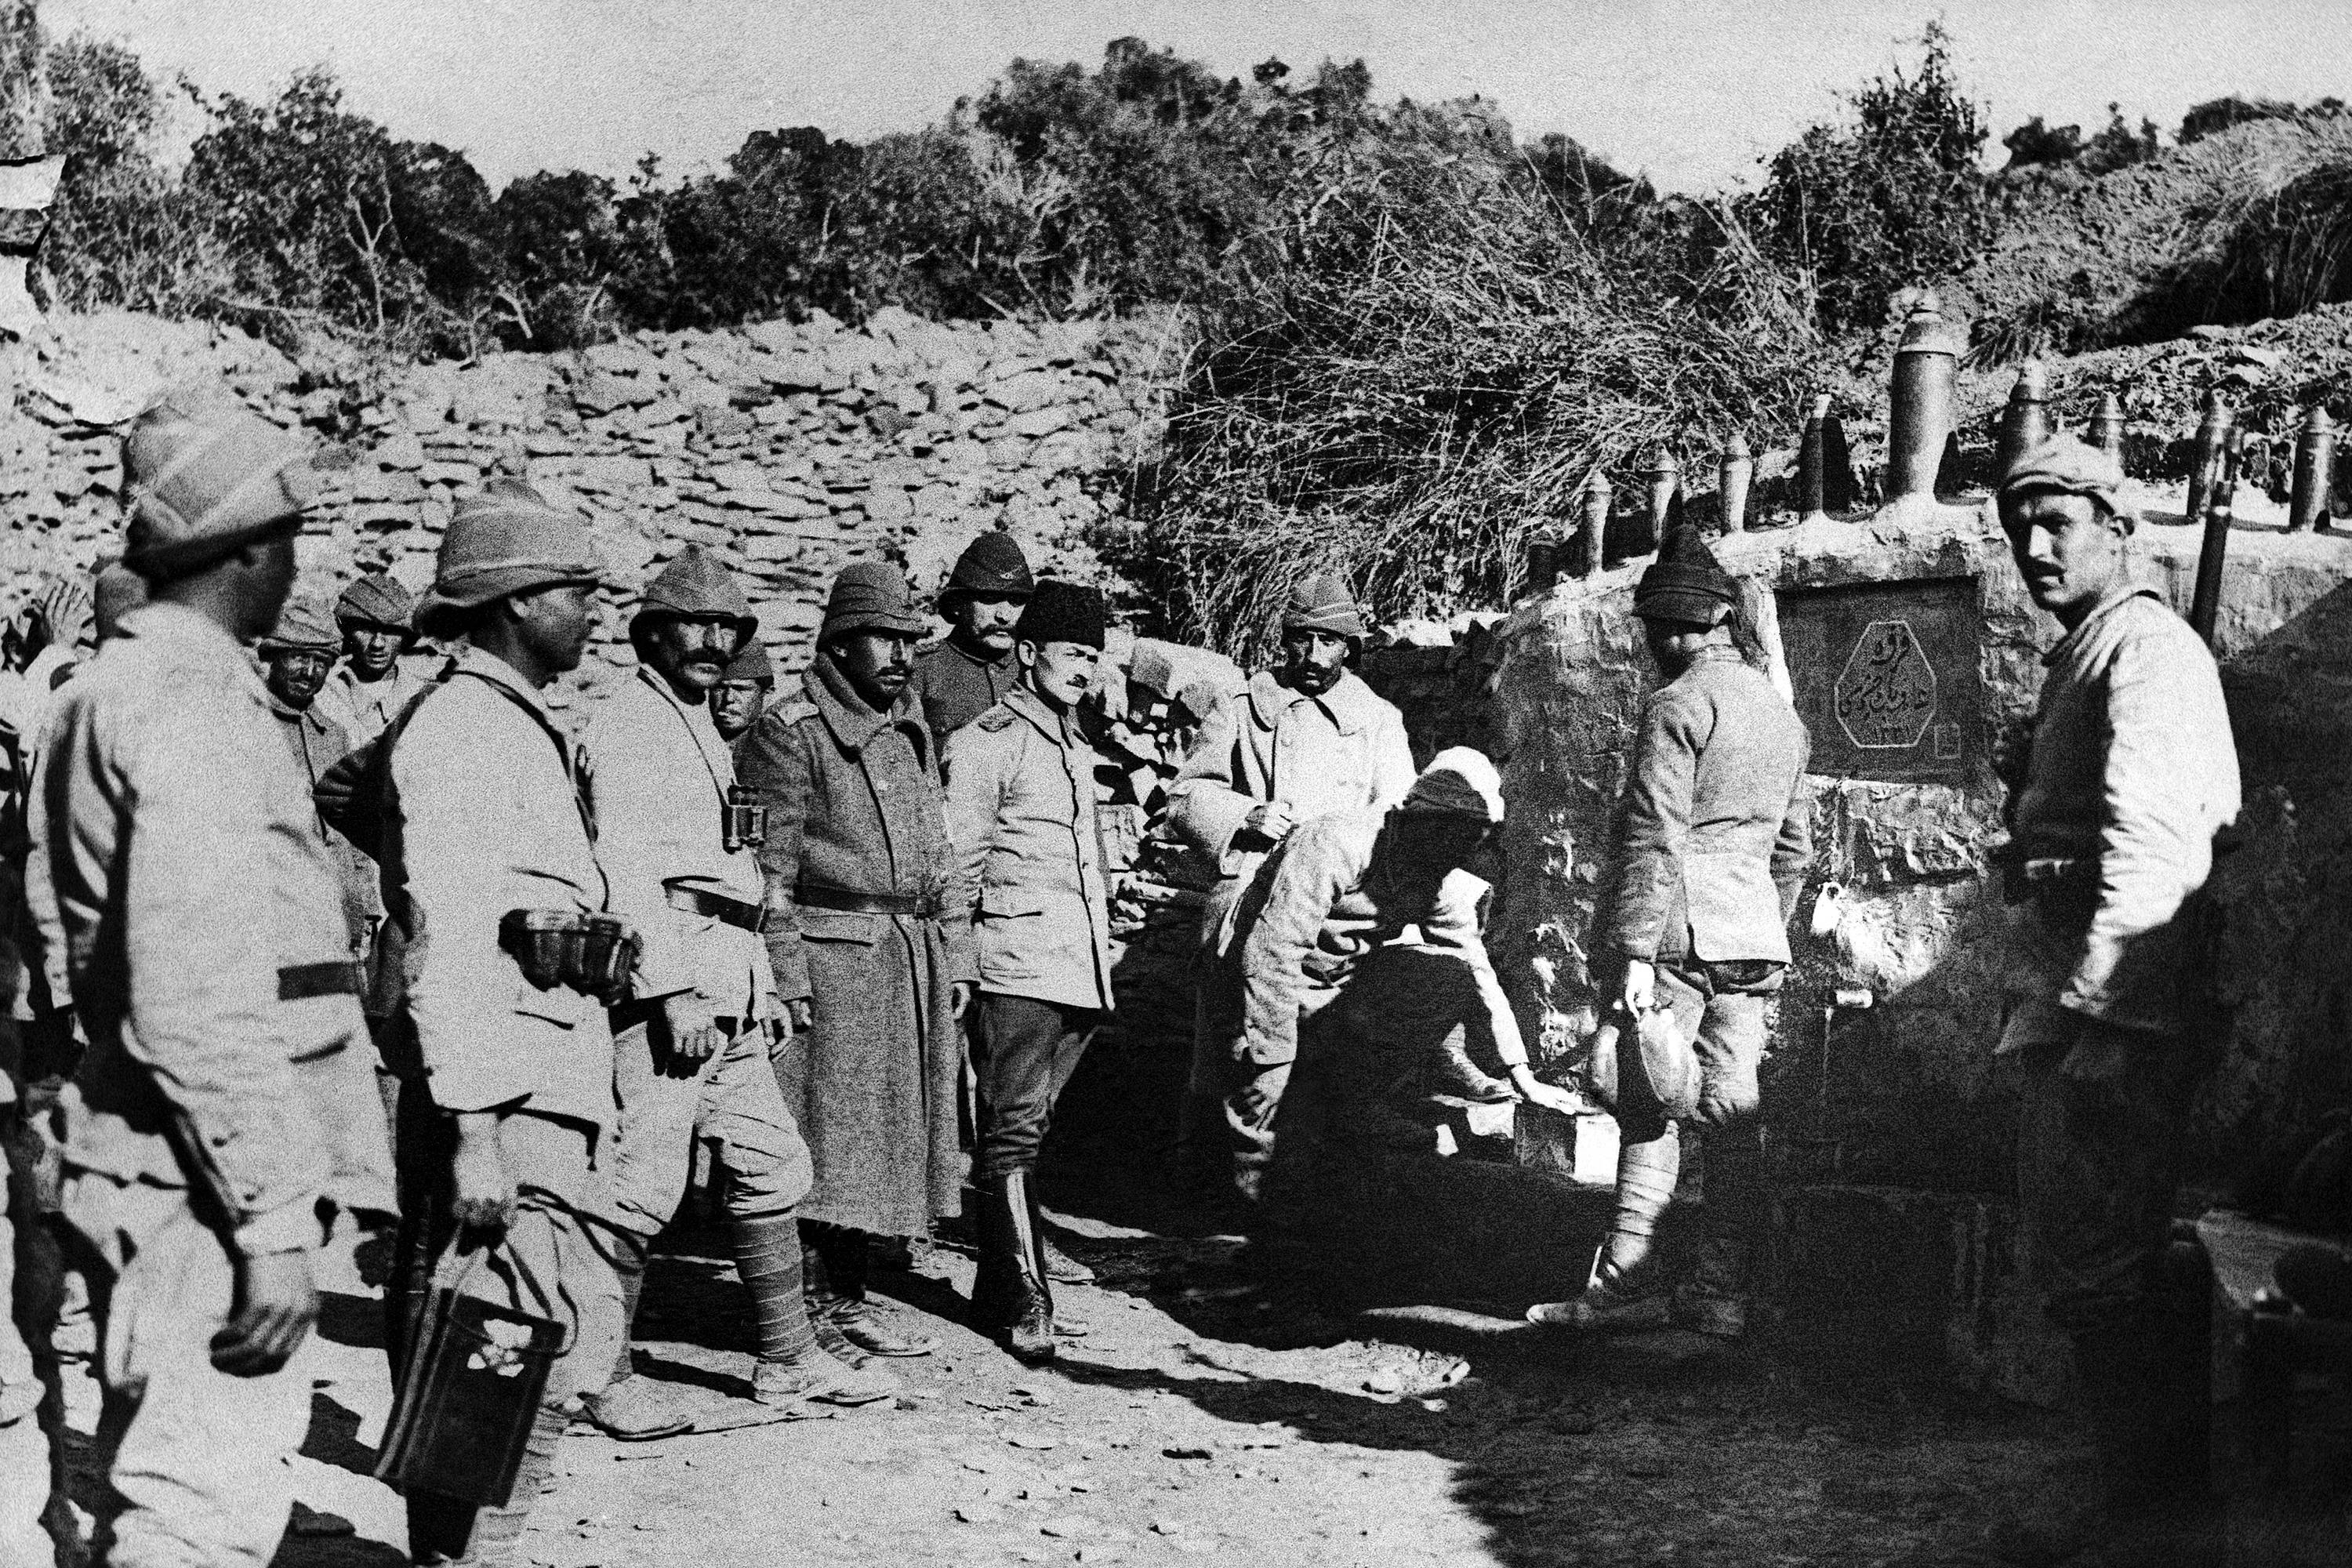 38 OF 100: In this 1915 file photo, Turkish soldiers form a queue to get water from a fountain, behind their lines in Gallipoli, Turkey.